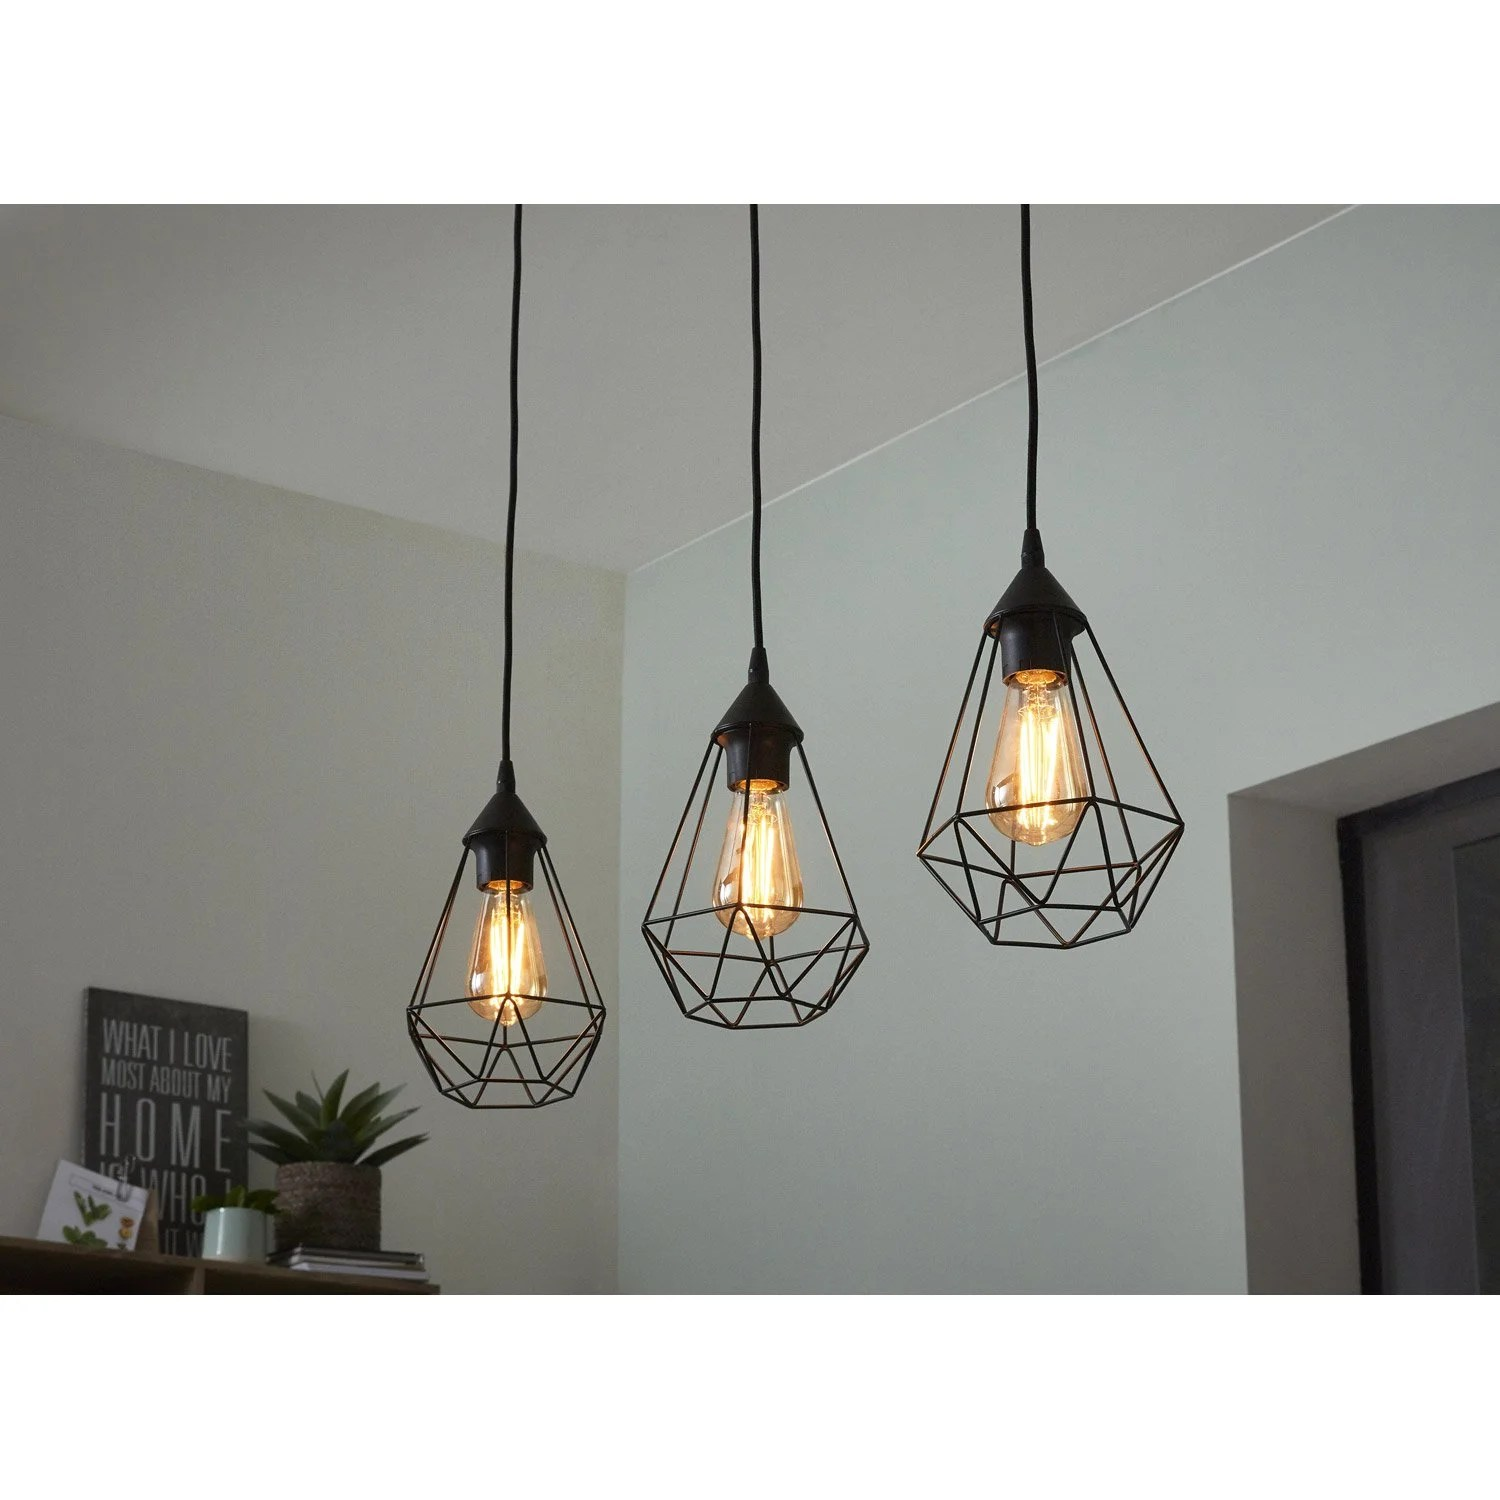 Lampe Suspension Style Industriel Suspension E27 Style Industriel Byron D17 5 Métal Noir 3 X 60 W Inspire